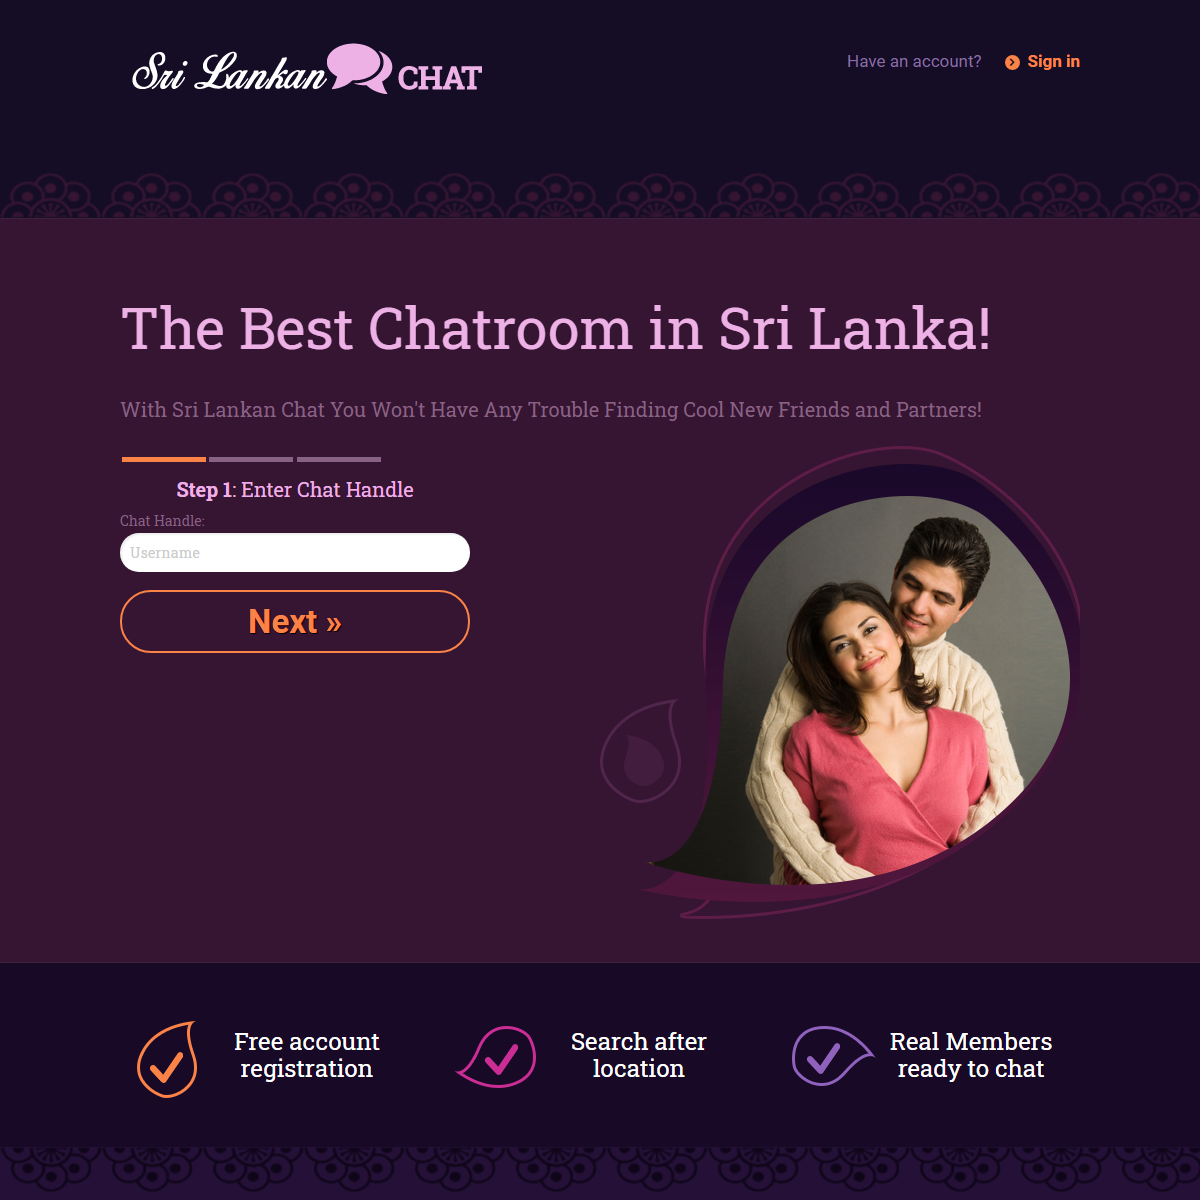 See Who Wants to Chat Now - Sri Lankan Chat